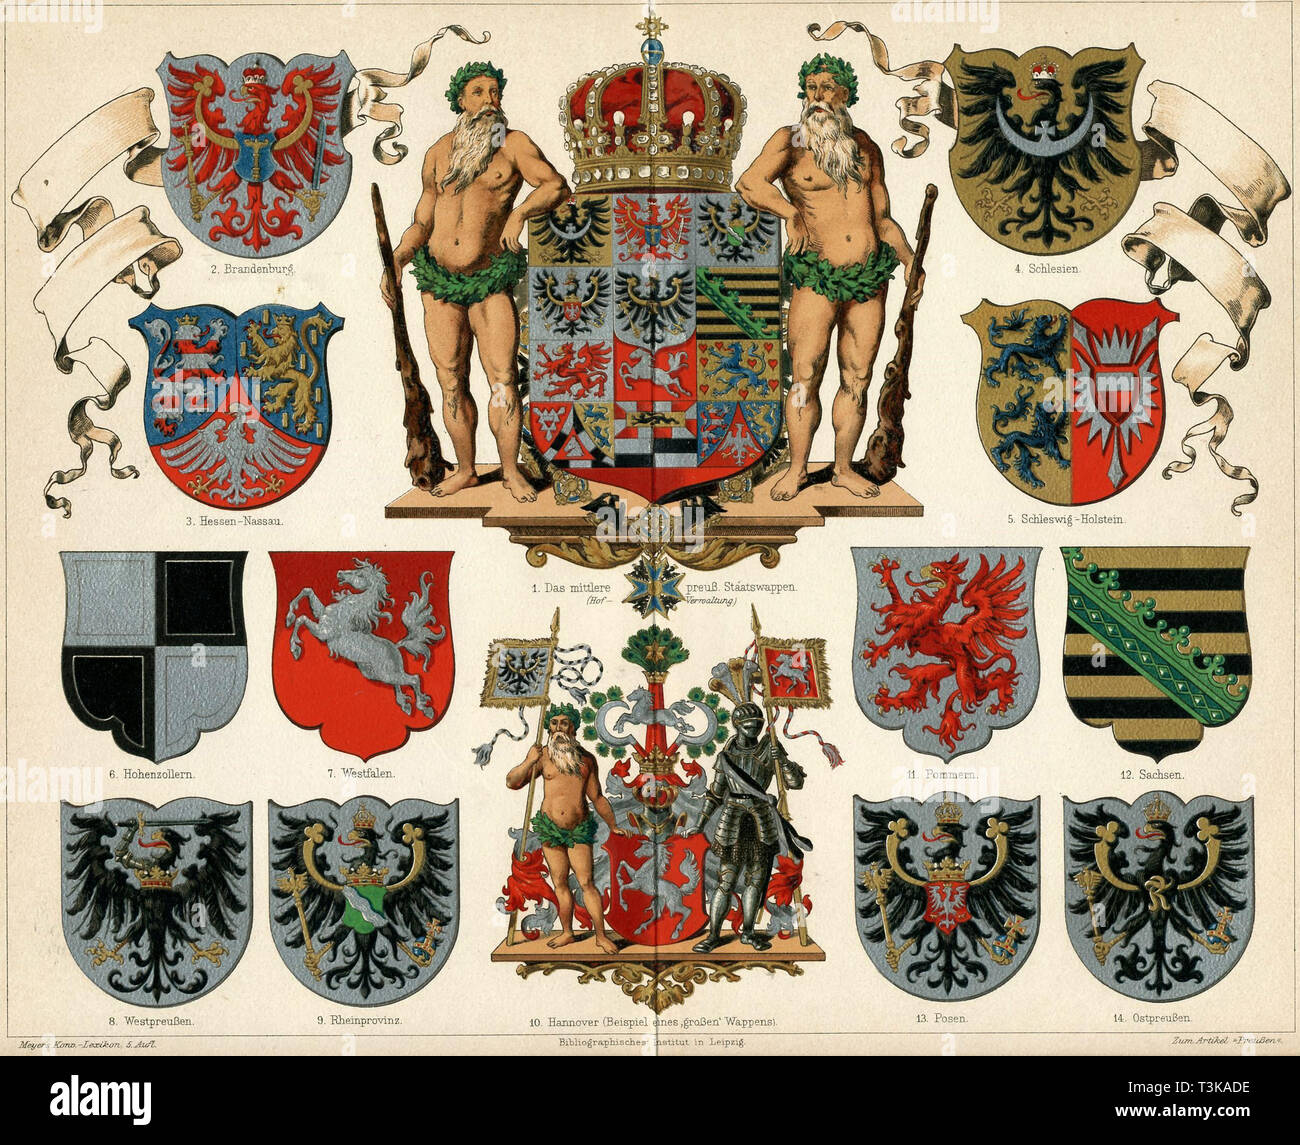 Coat of arms of the Kingdom of Prussia and provinces (Meyers Großes Konversations-Lexikon), 1883.  Private Collection. - Stock Image